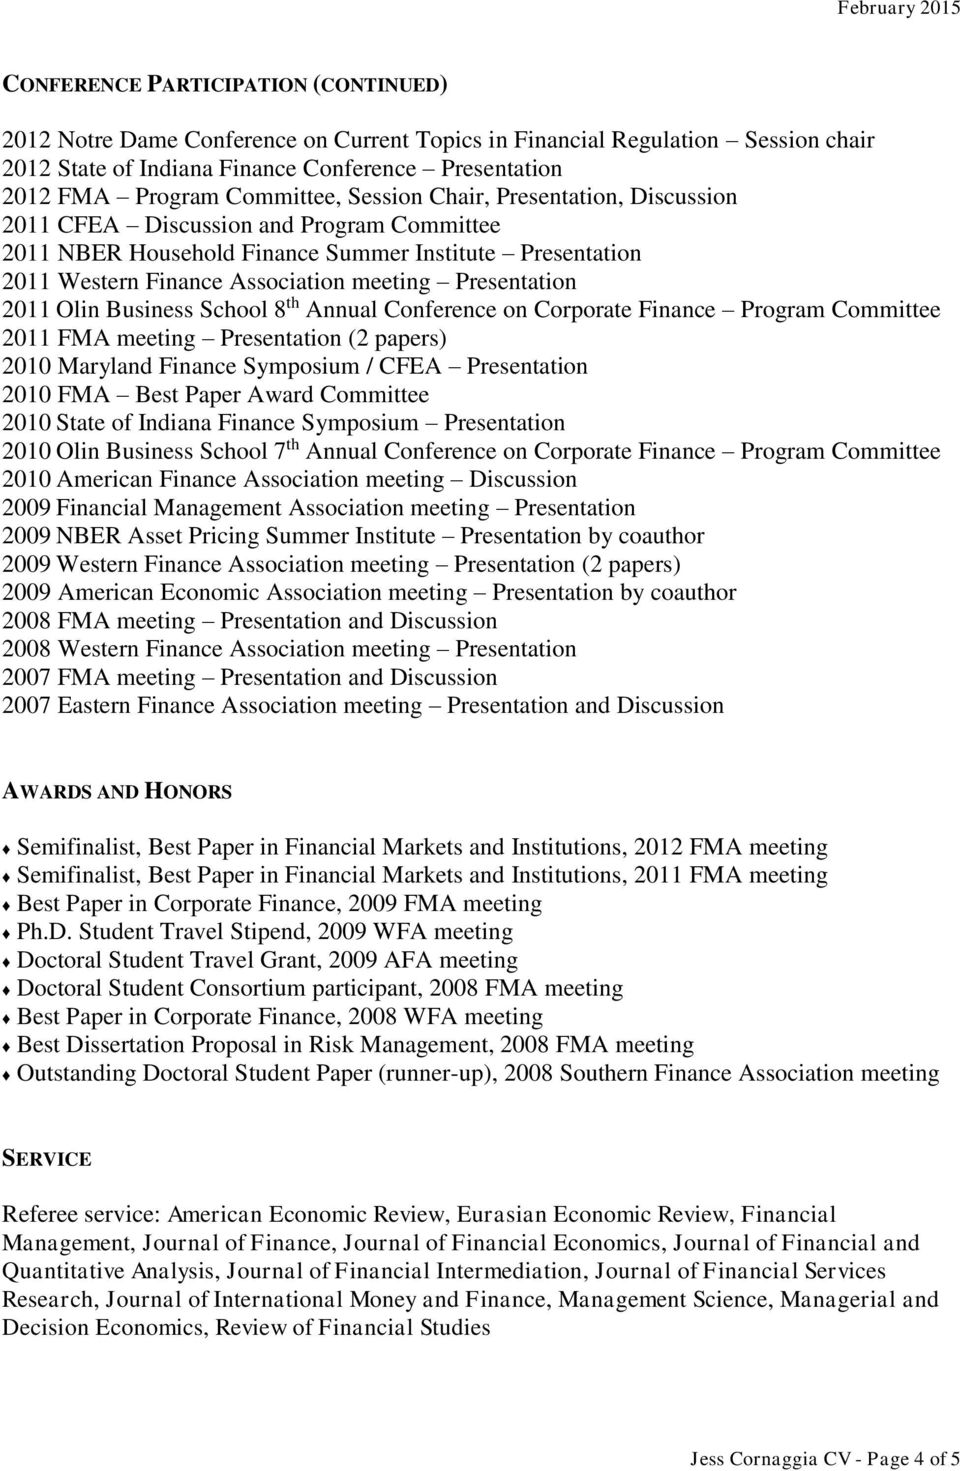 Presentation 2011 Olin Business School 8 th Annual Conference on Corporate Finance Program Committee 2011 FMA meeting Presentation (2 papers) 2010 Maryland Finance Symposium / CFEA Presentation 2010